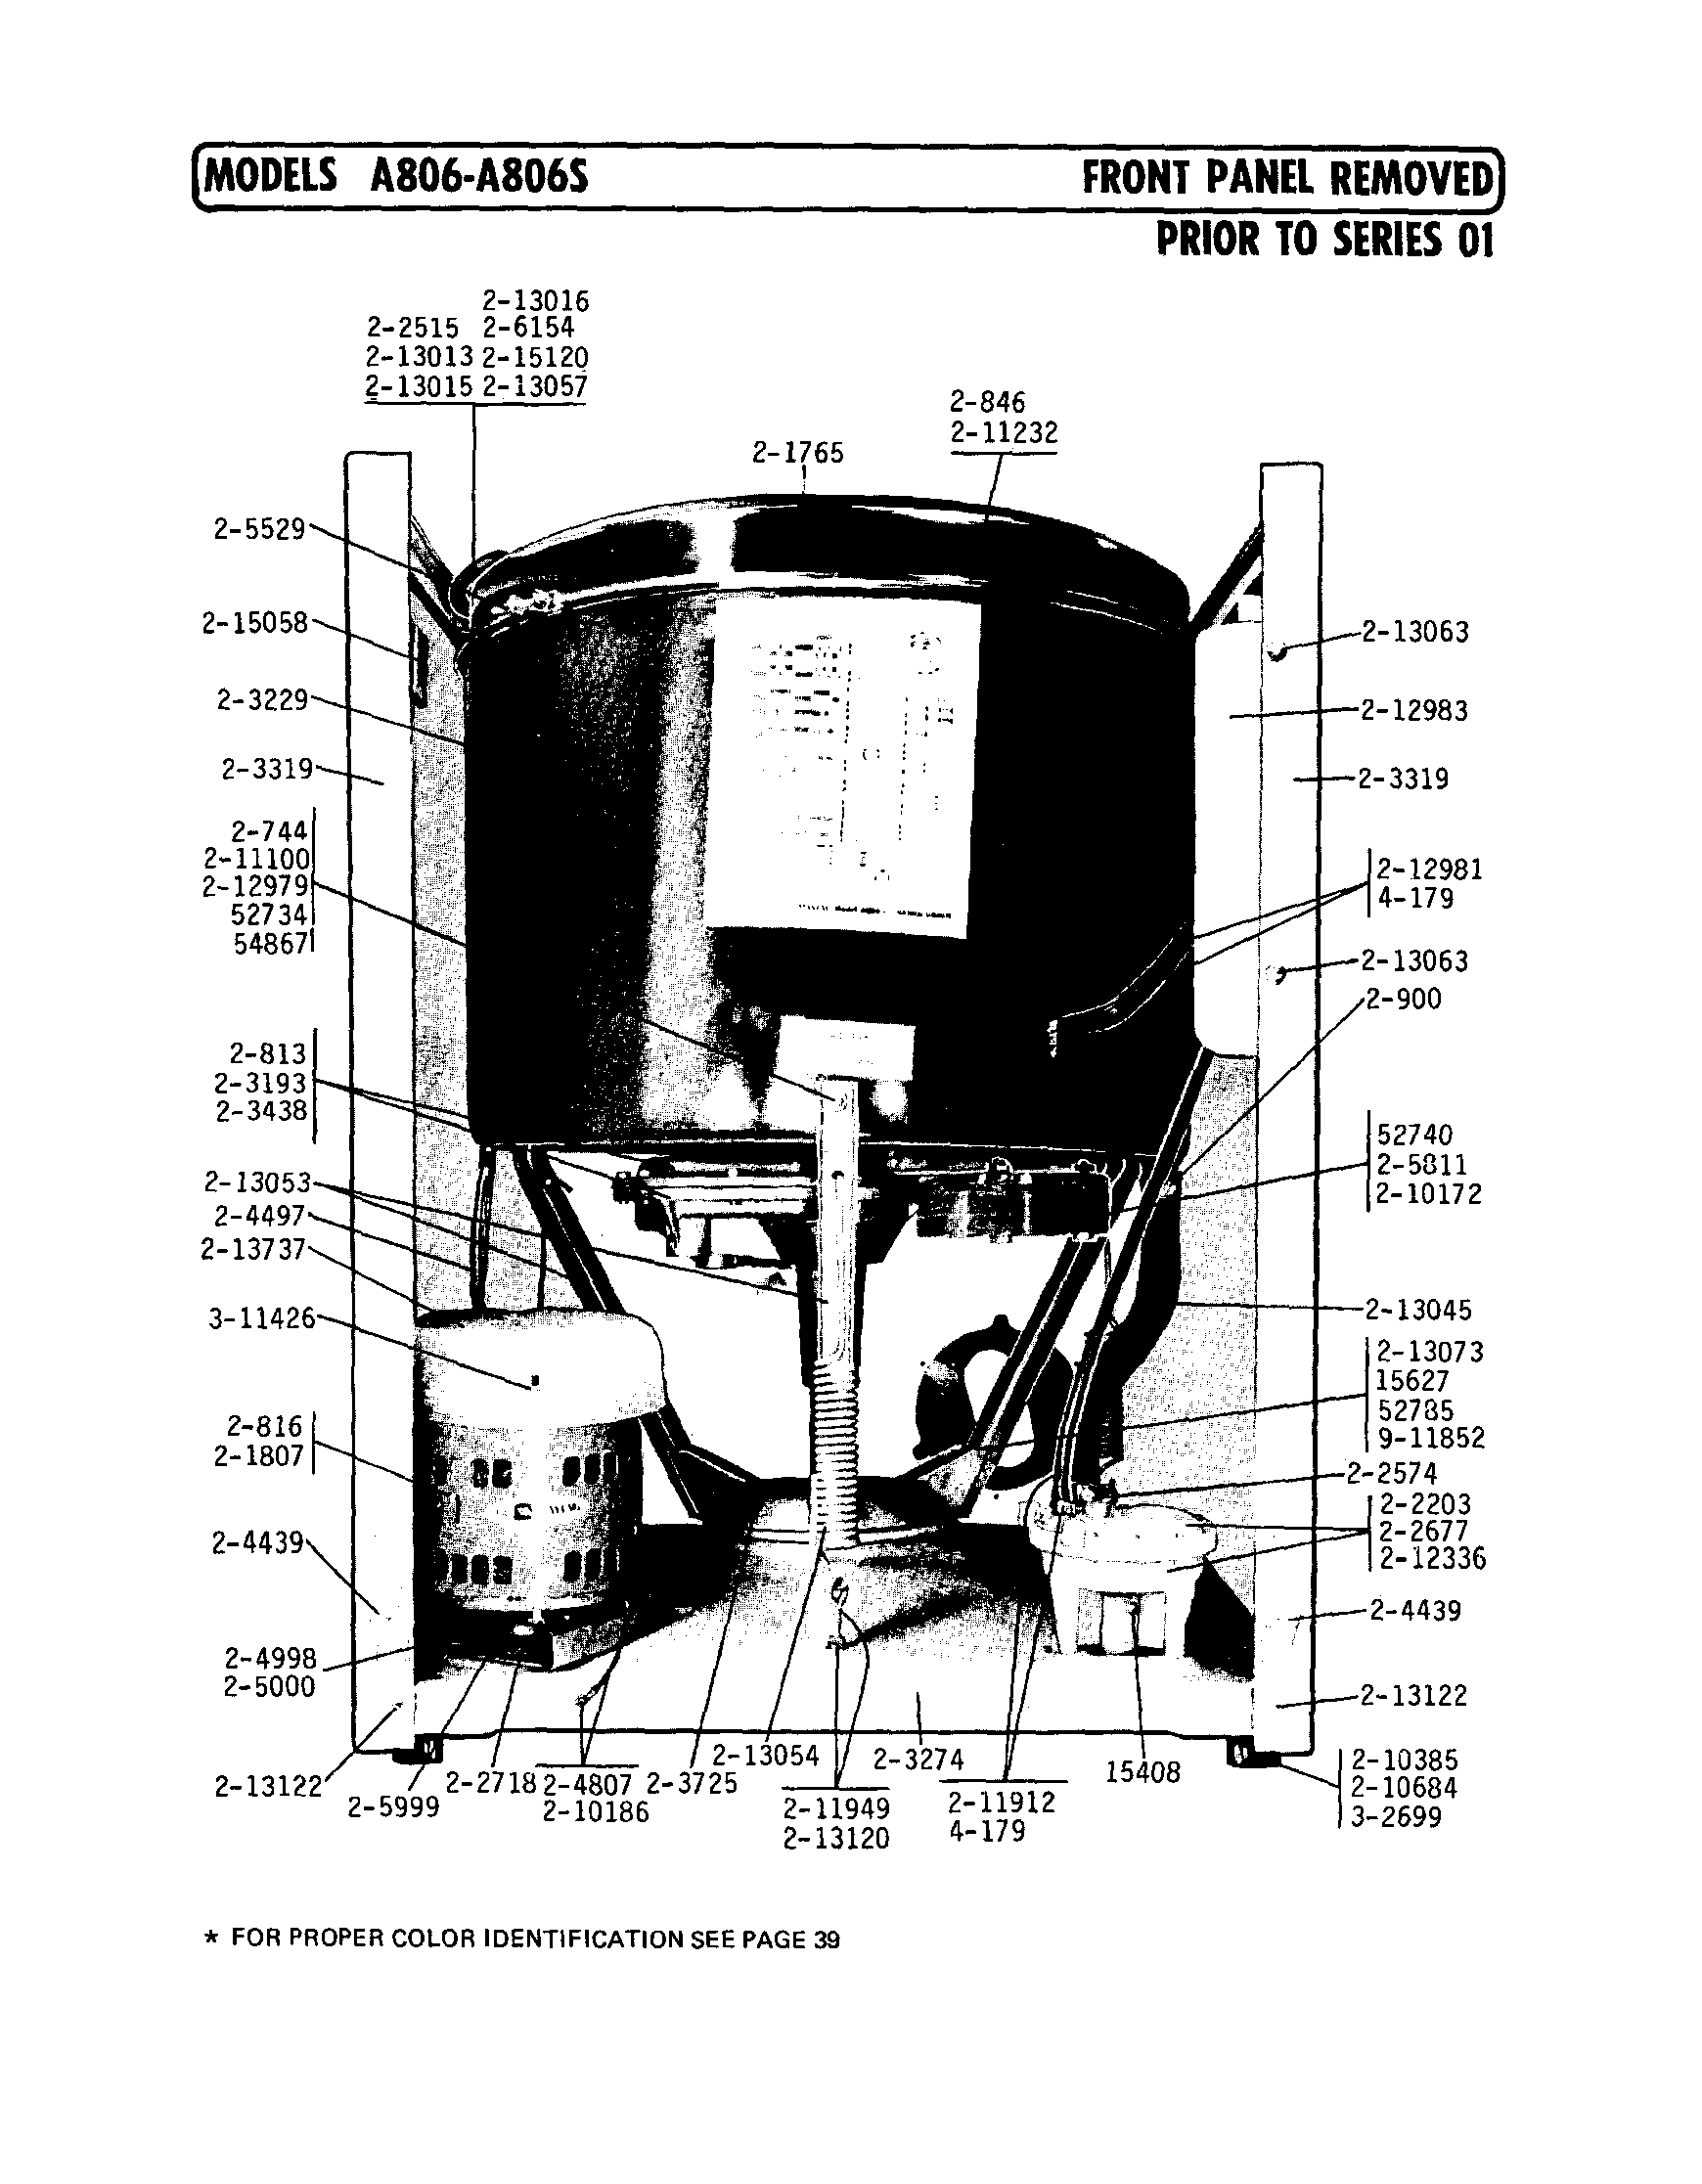 hight resolution of a806 washer front panel removed prior to series 01 parts diagram